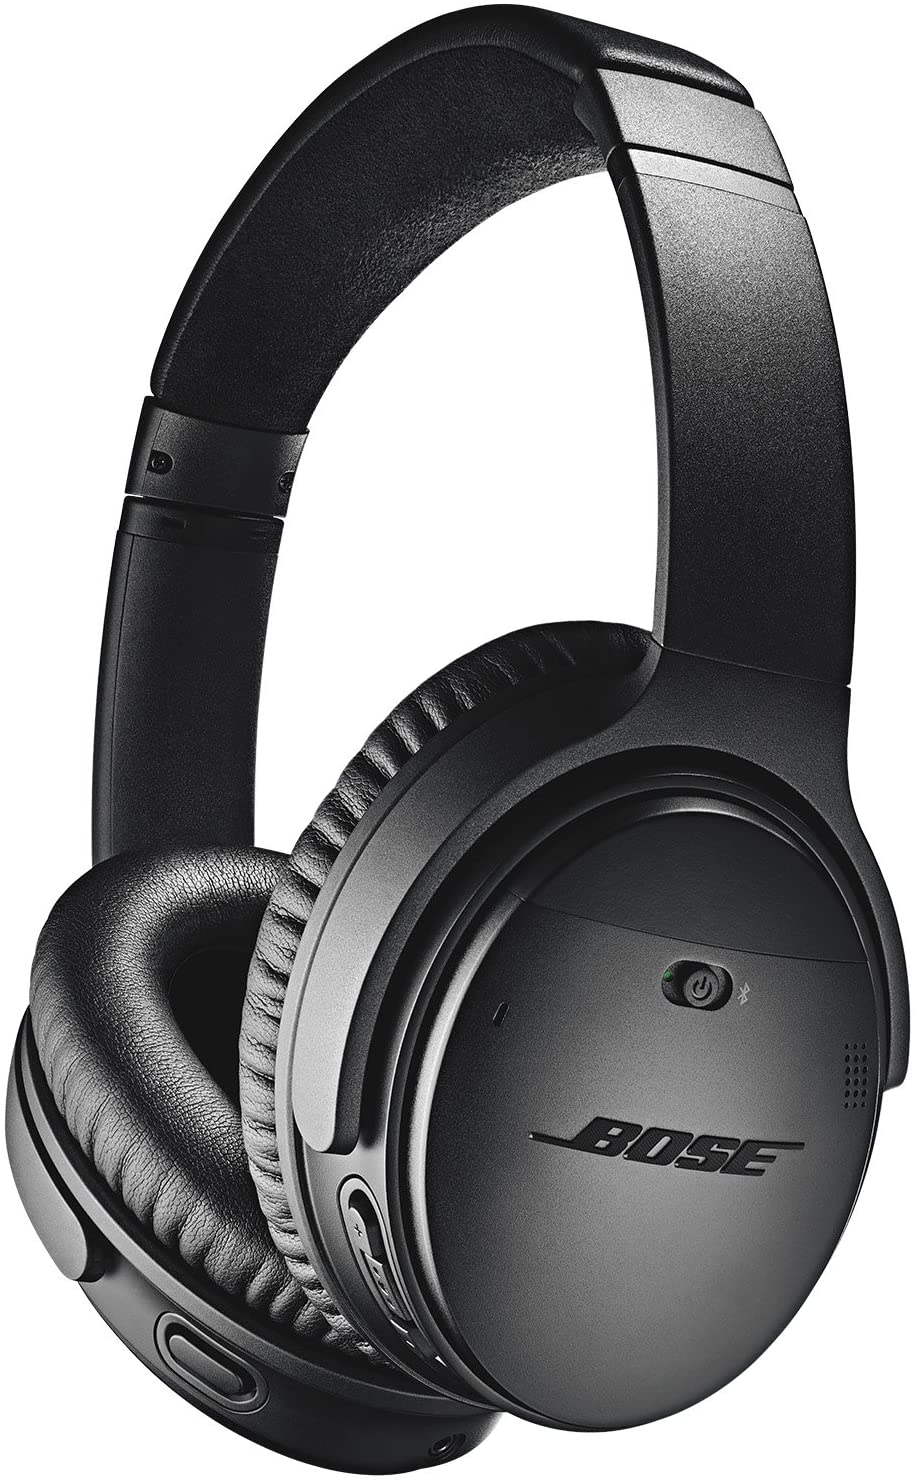 Bose QuietComfort 35 II Noise-Cancelling Wireless Bluetooth Headphones